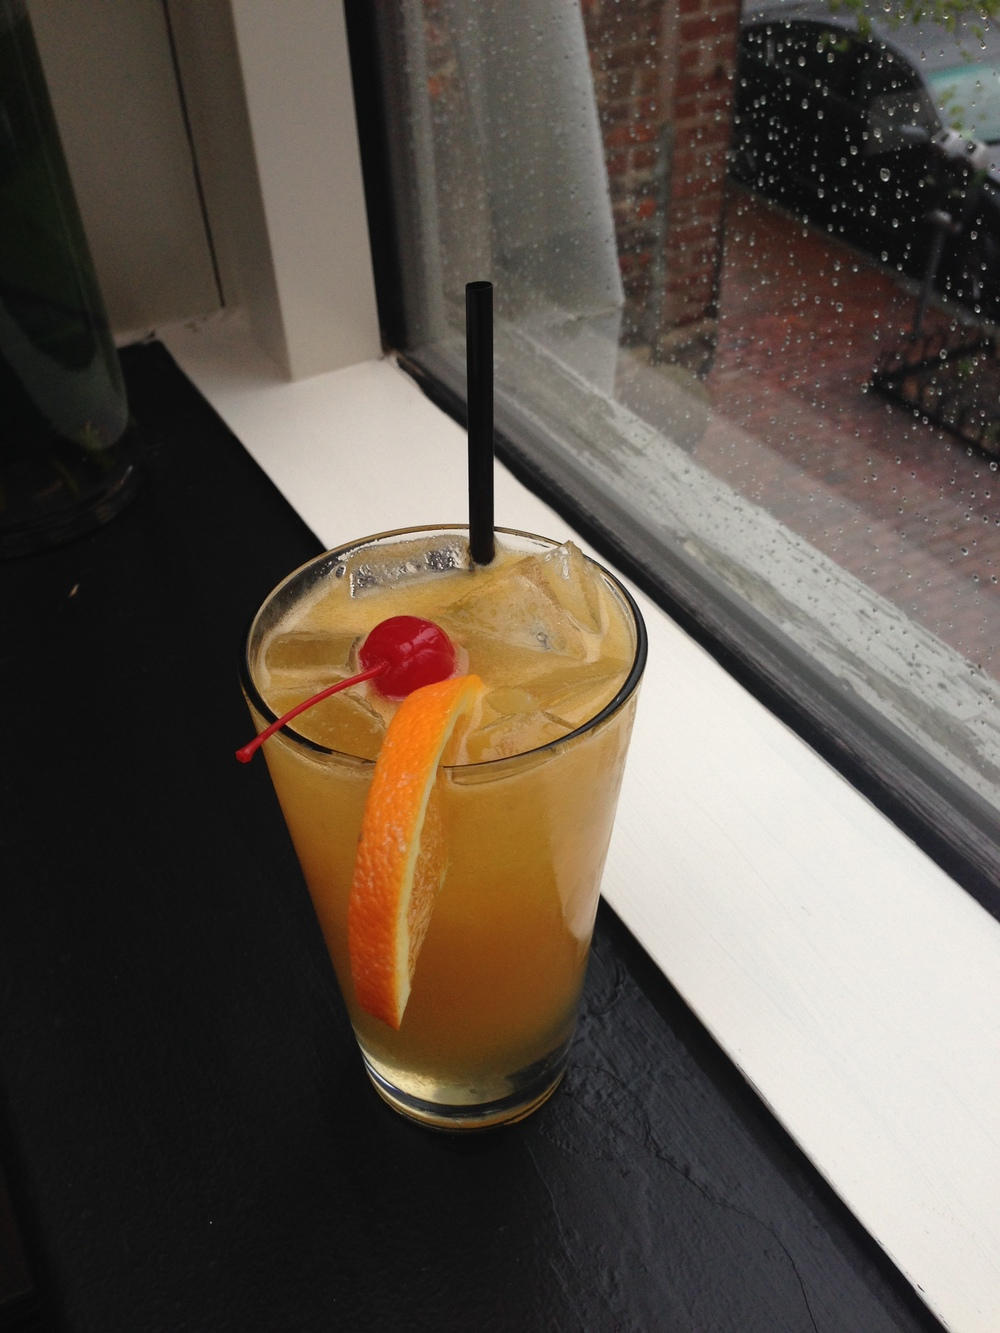 Mango-Orange Cocktail